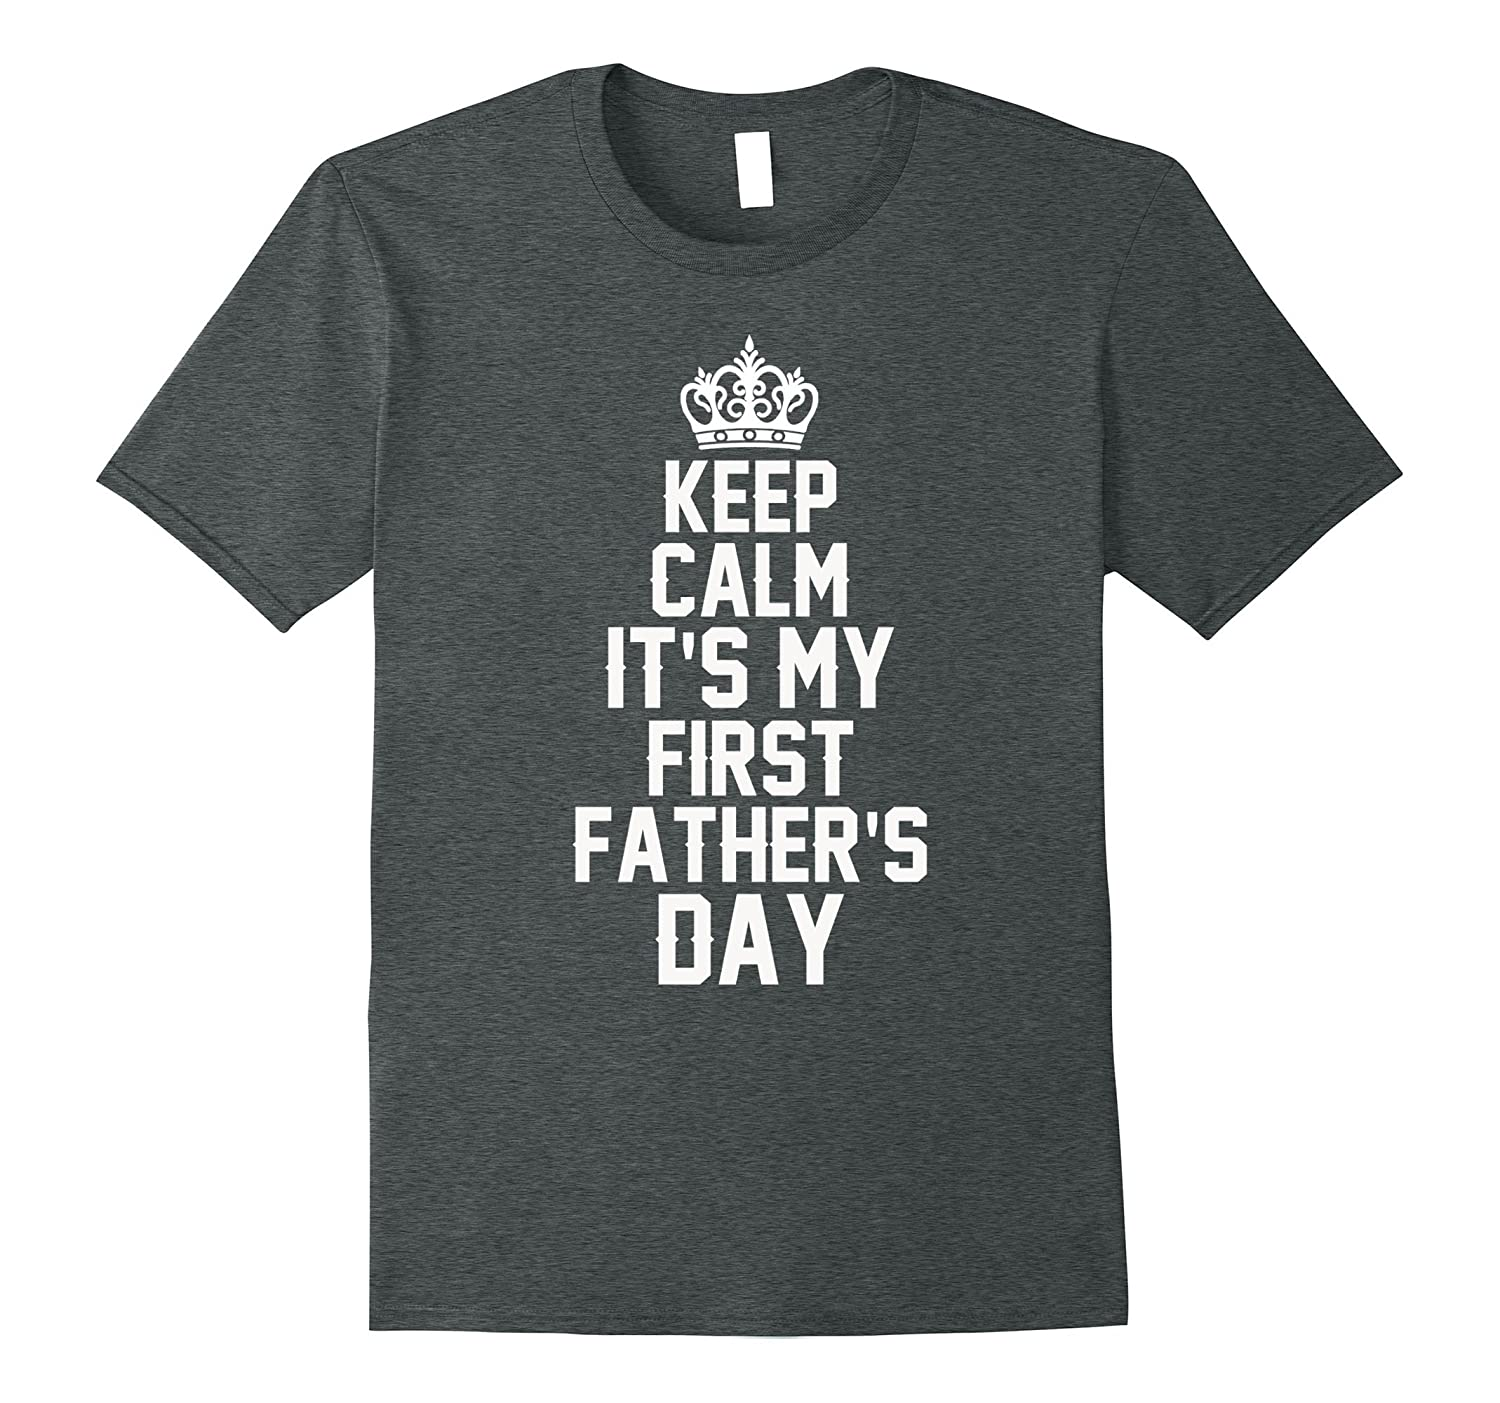 Mens Keep Calm Its my First Fathers Day T-Shirt for New Dad-Vaci